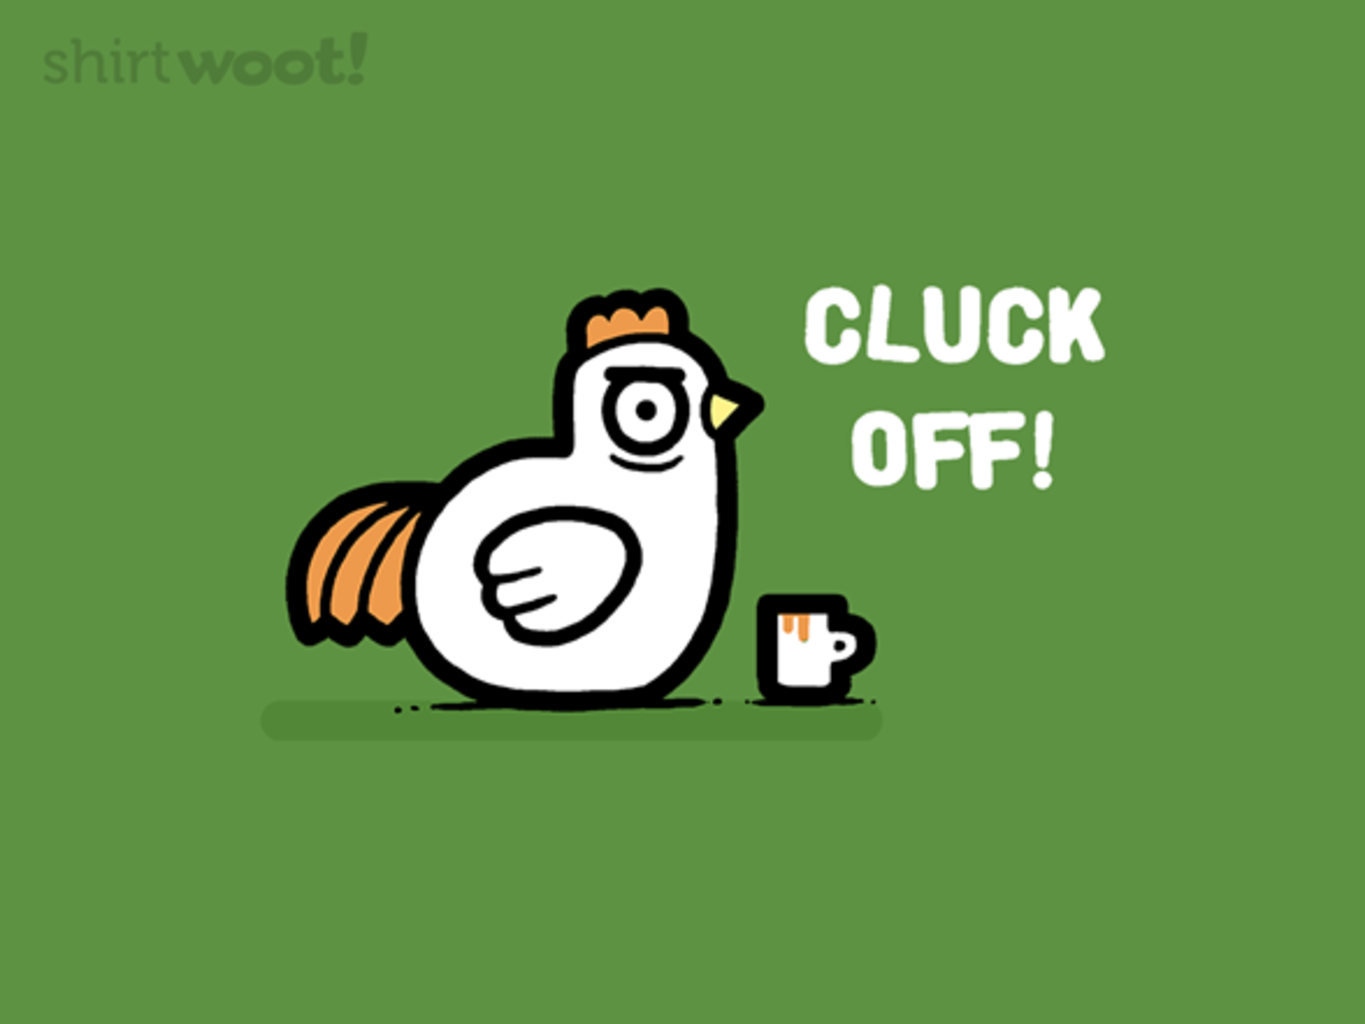 Woot!: Cluck You - $8.00 + $5 standard shipping